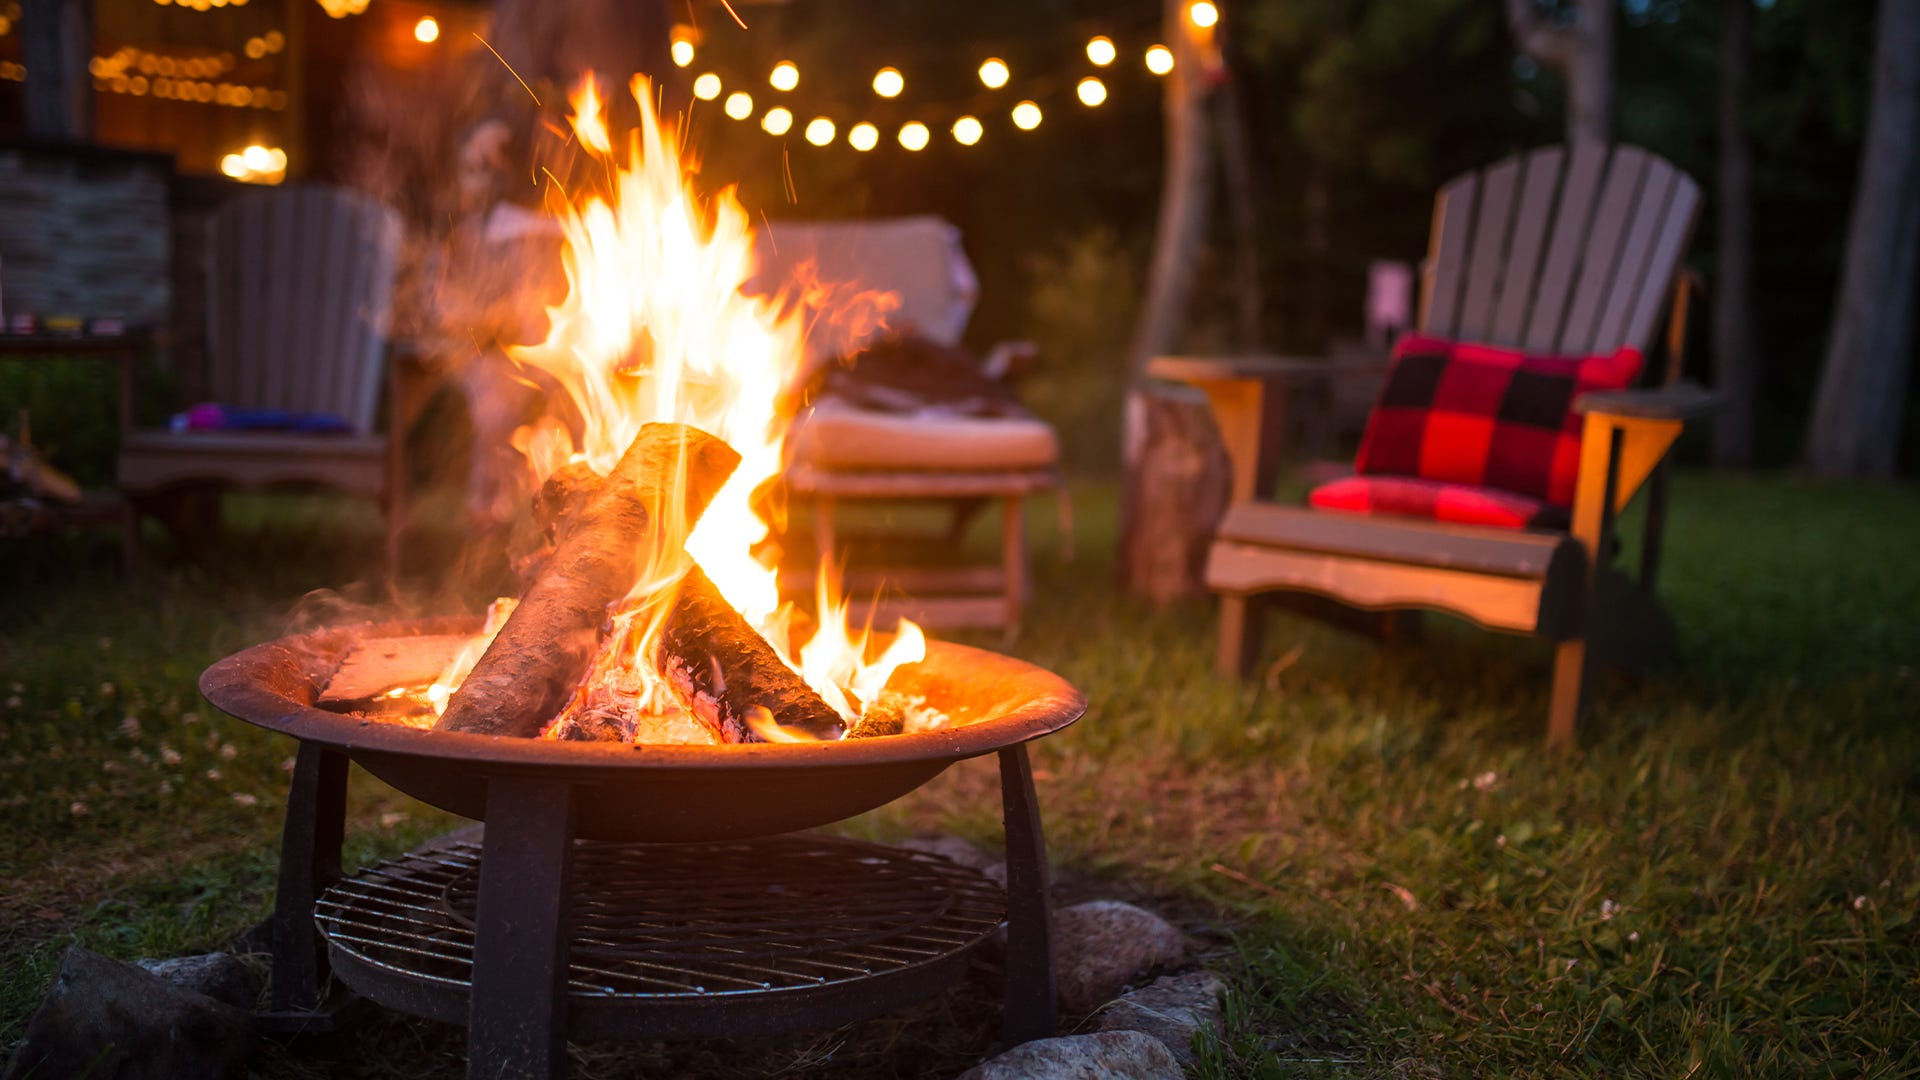 Don't Fear the Fire: Bonfire Safety Tips